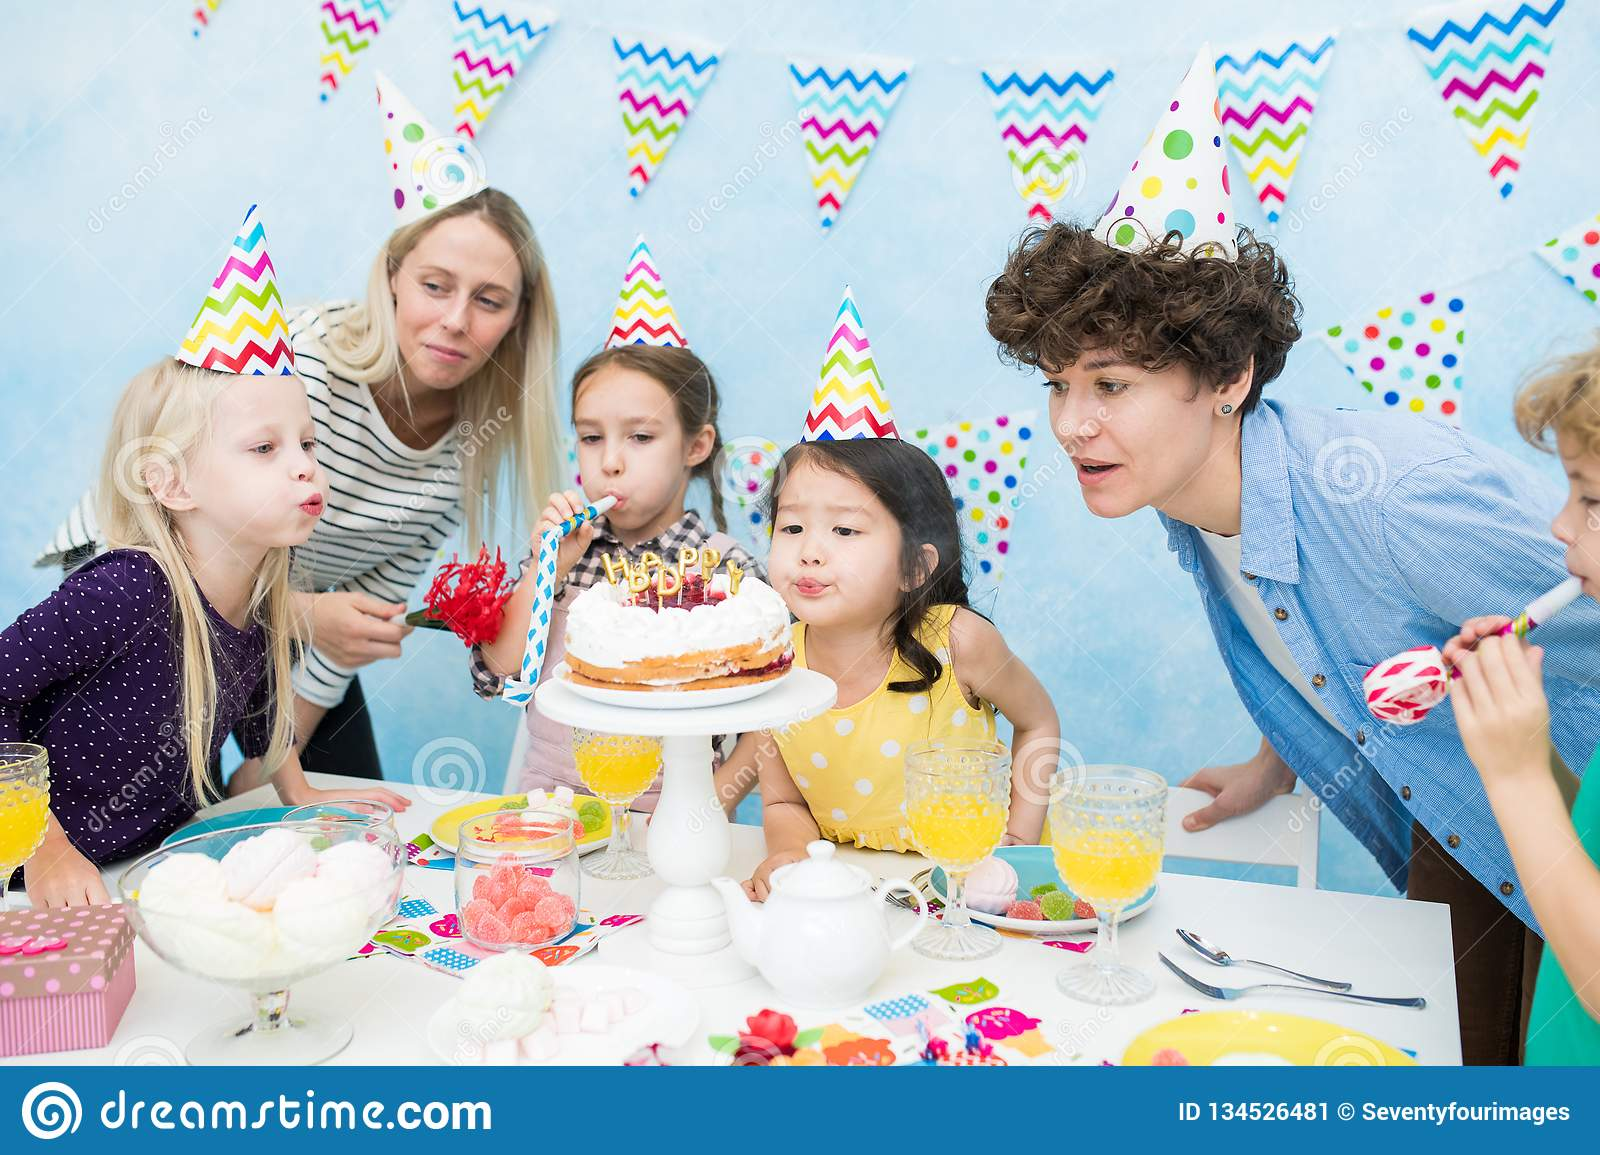 Celebrating kids birthday party